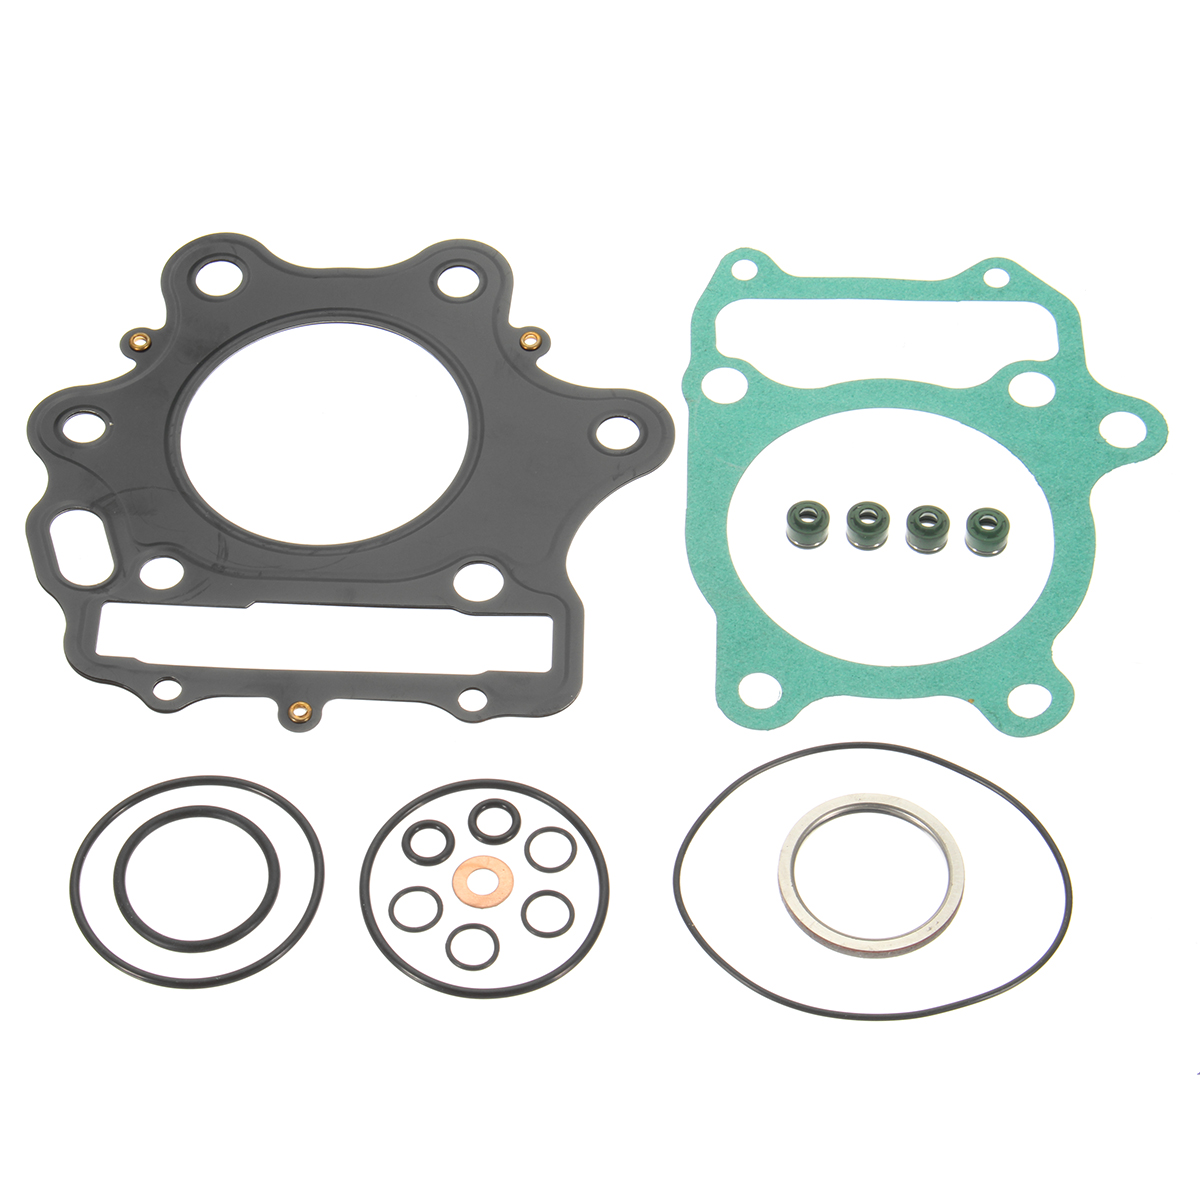 Top End Head Gasket Kit Set For HONDA TRX 300EX 300X 19